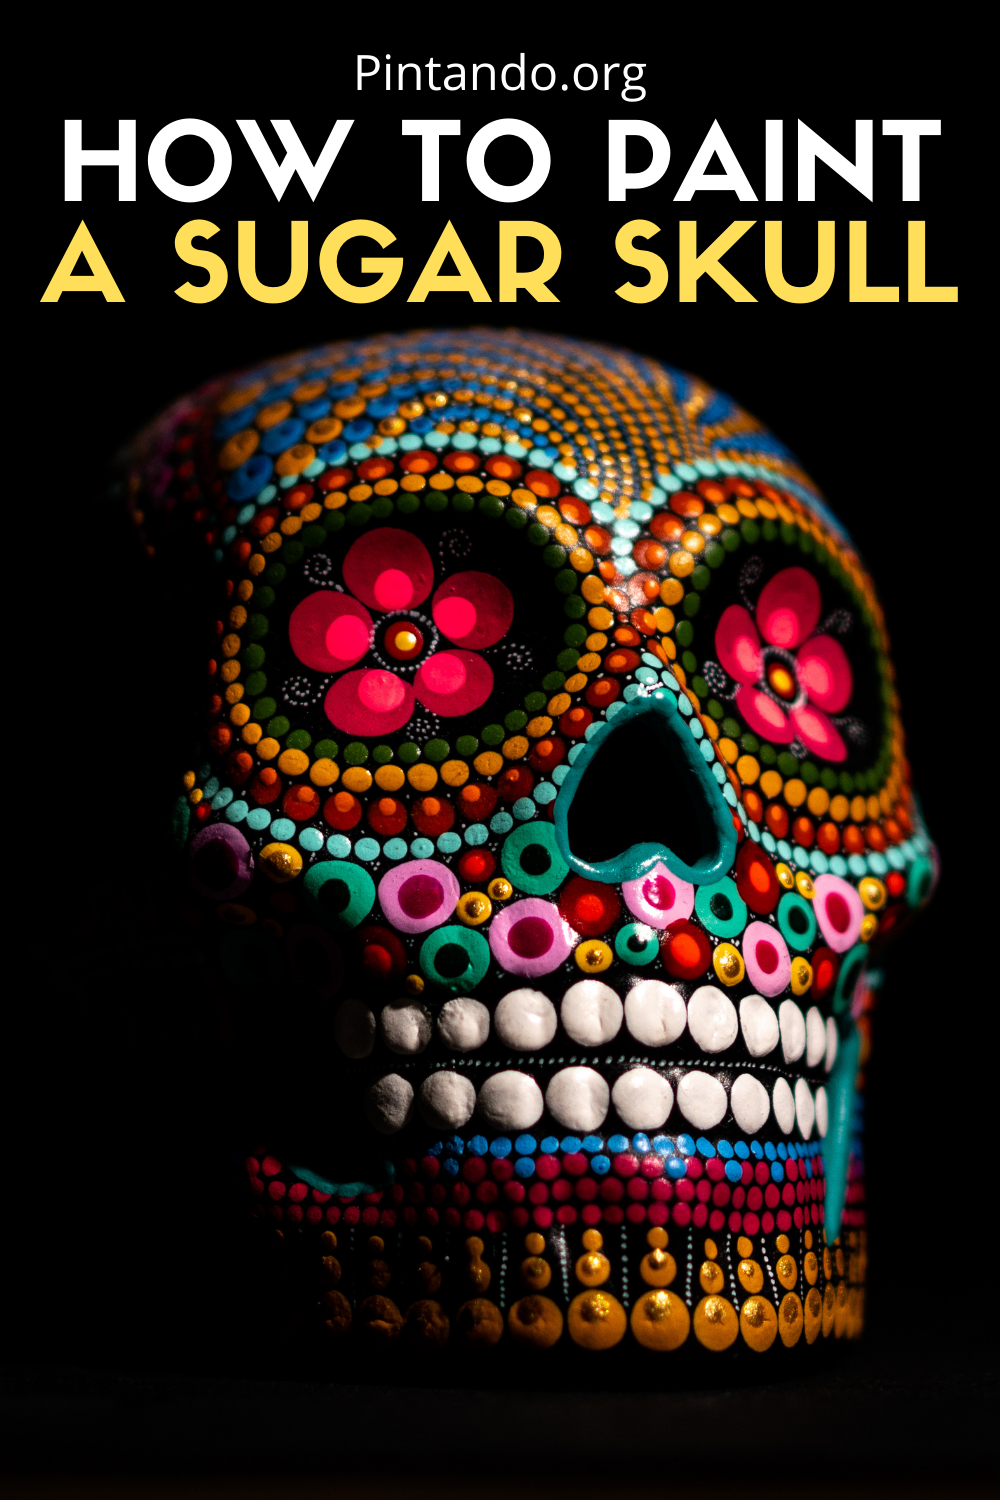 HOW TO PAINT A SUGAR SKULL (1)